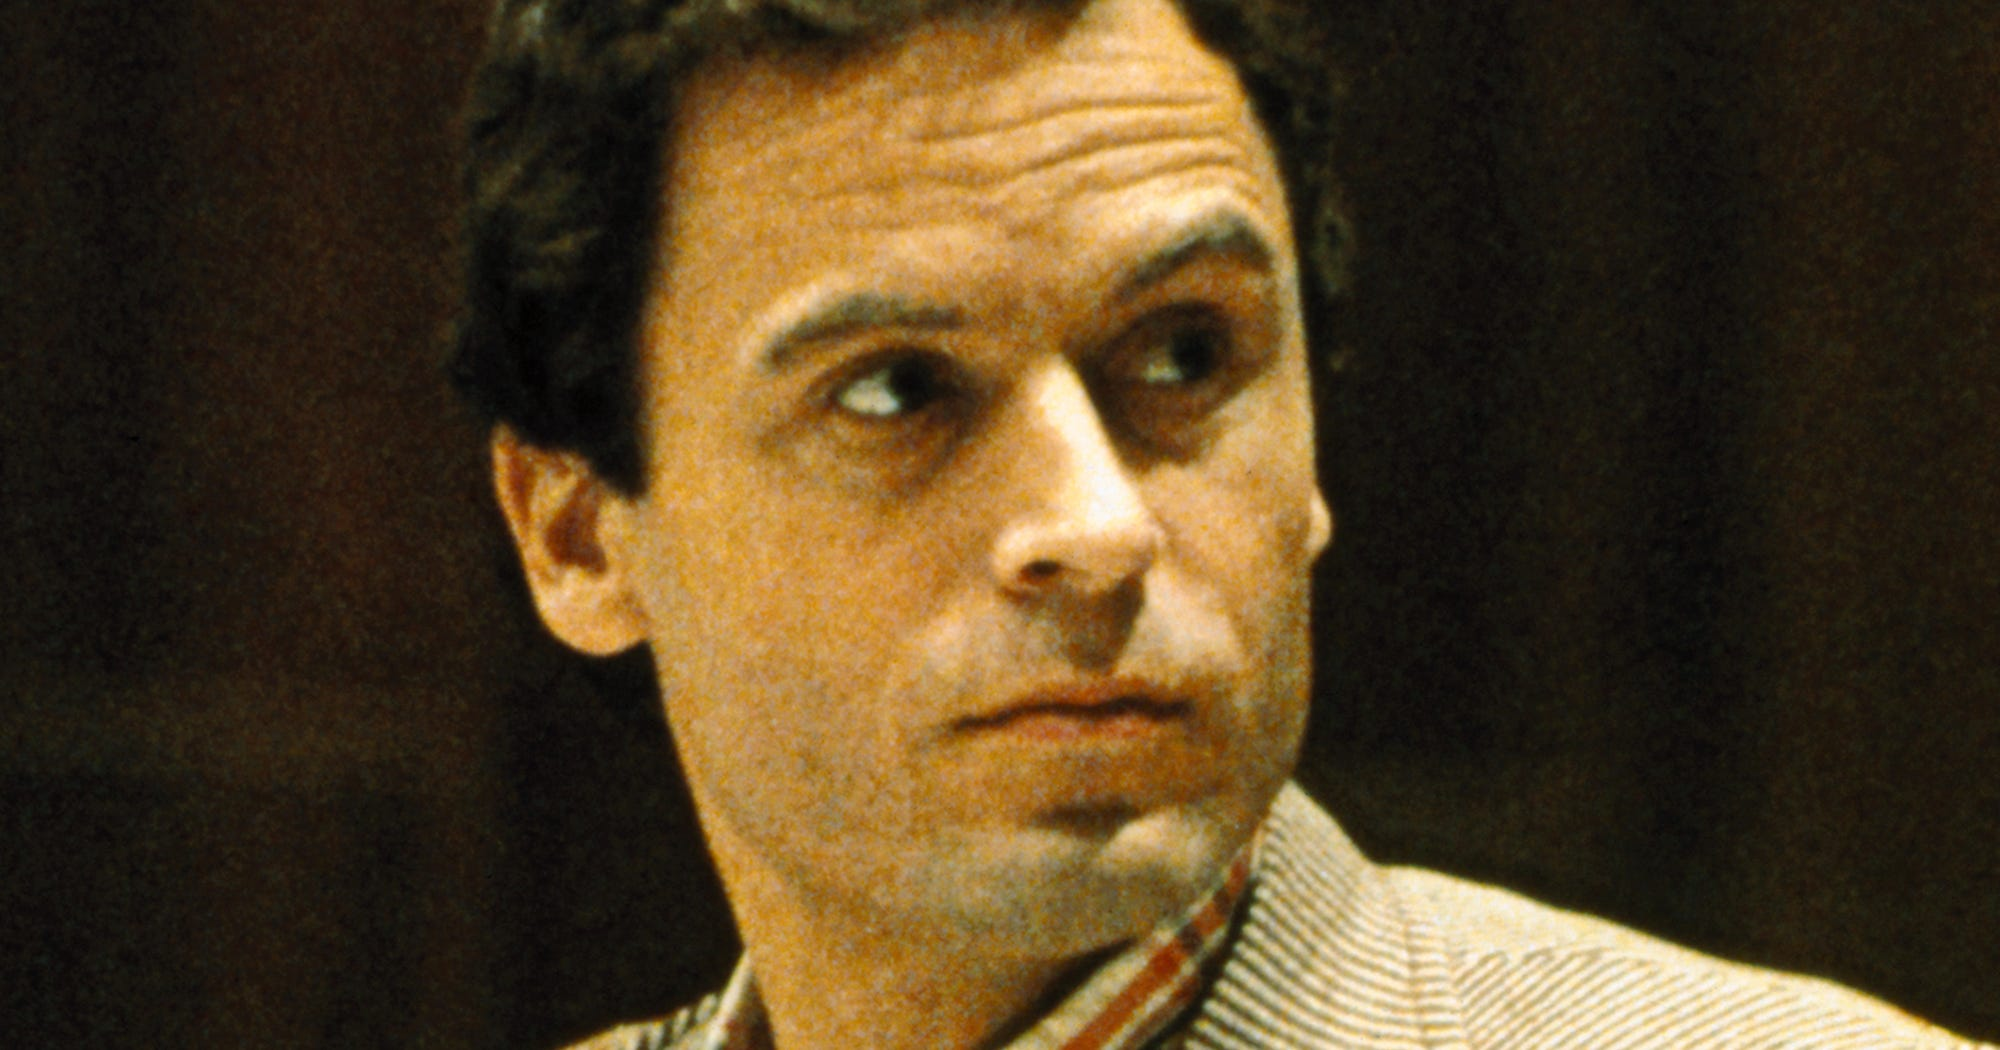 ted bundy personality disorder